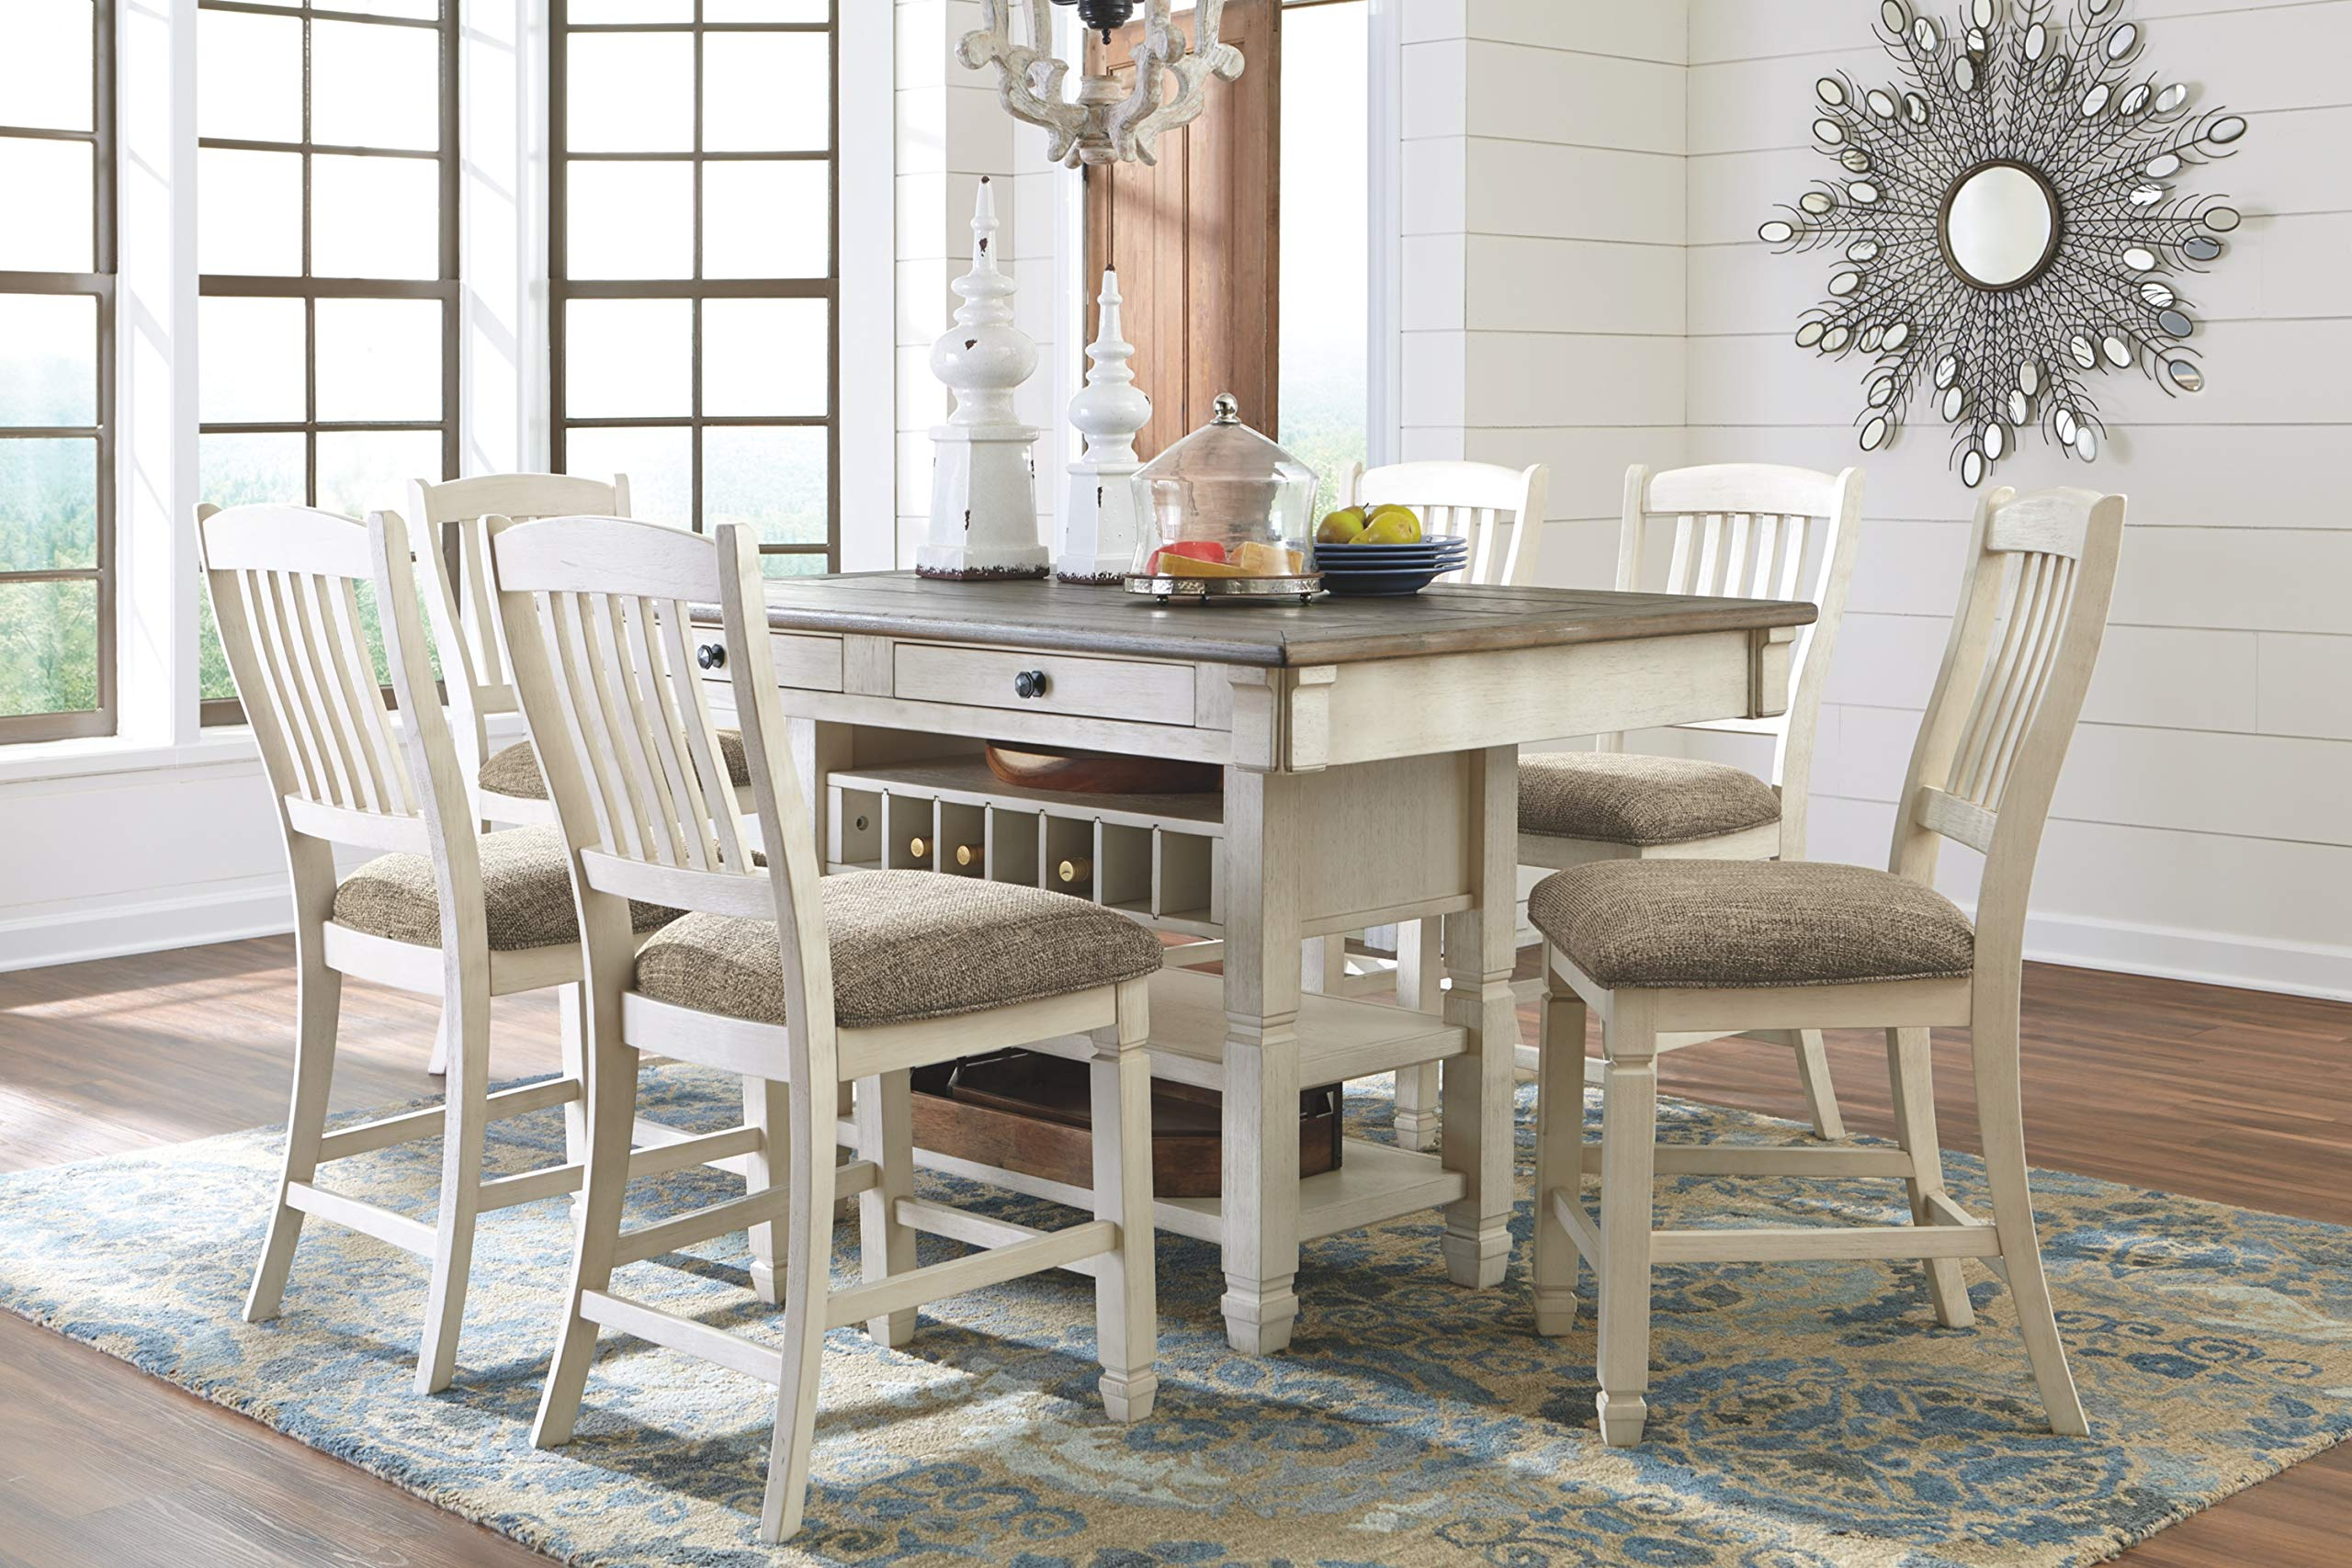 Ashley Furniture Signature Design - Bolanburg Counter Height Dining Room Table - Antique White by Signature Design by Ashley (Image #10)